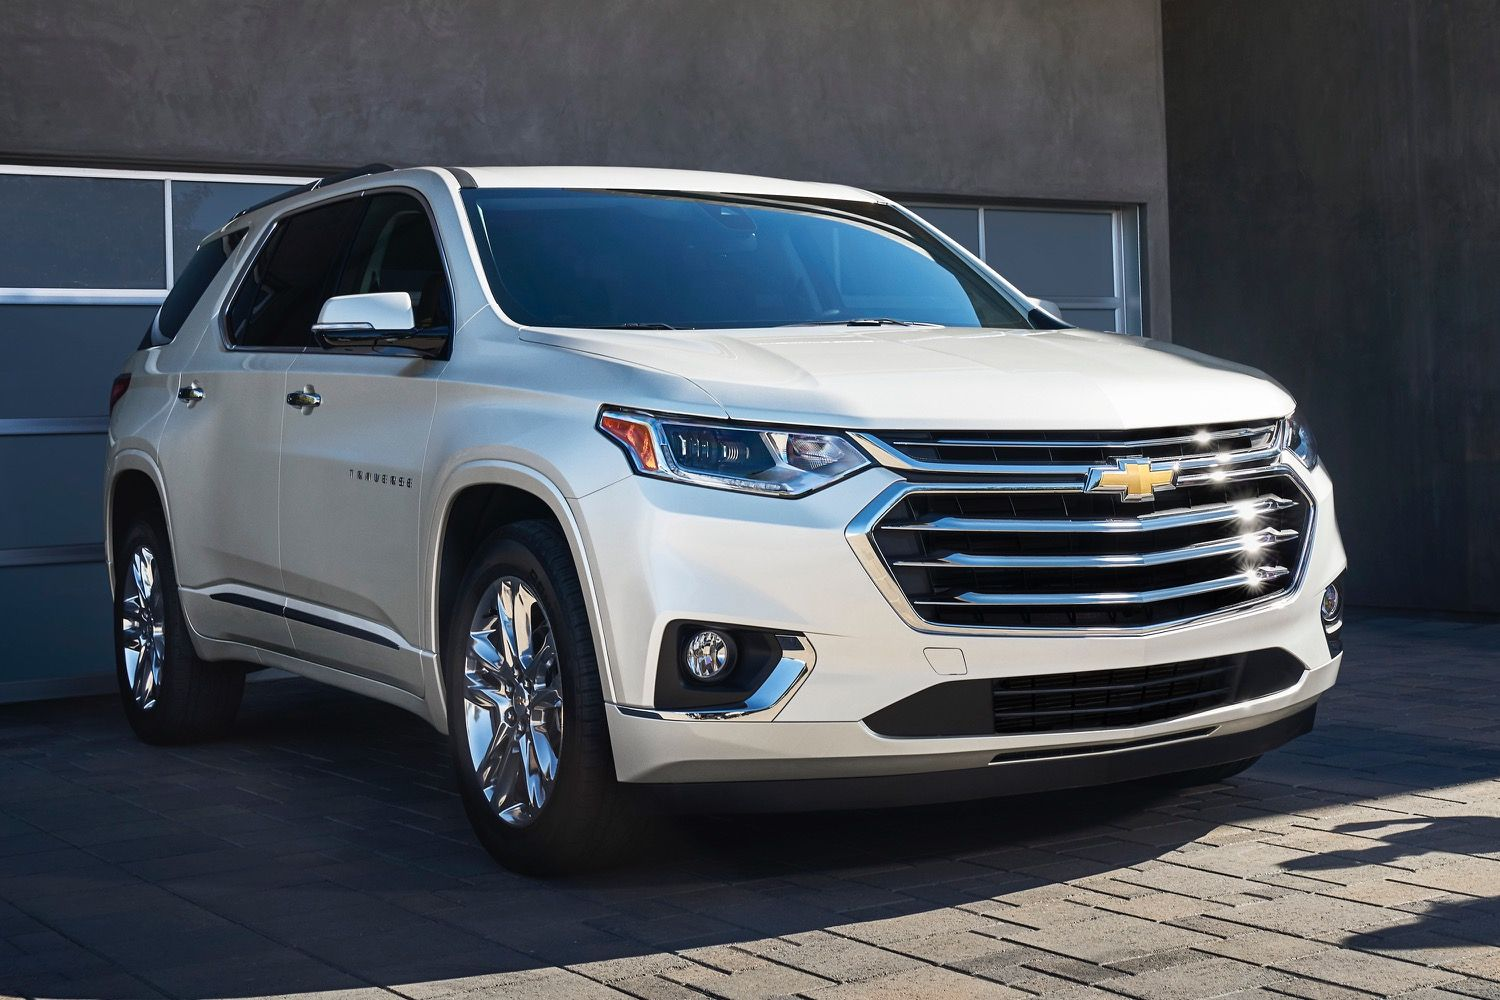 2020 Chevy Traverse Interior 2020